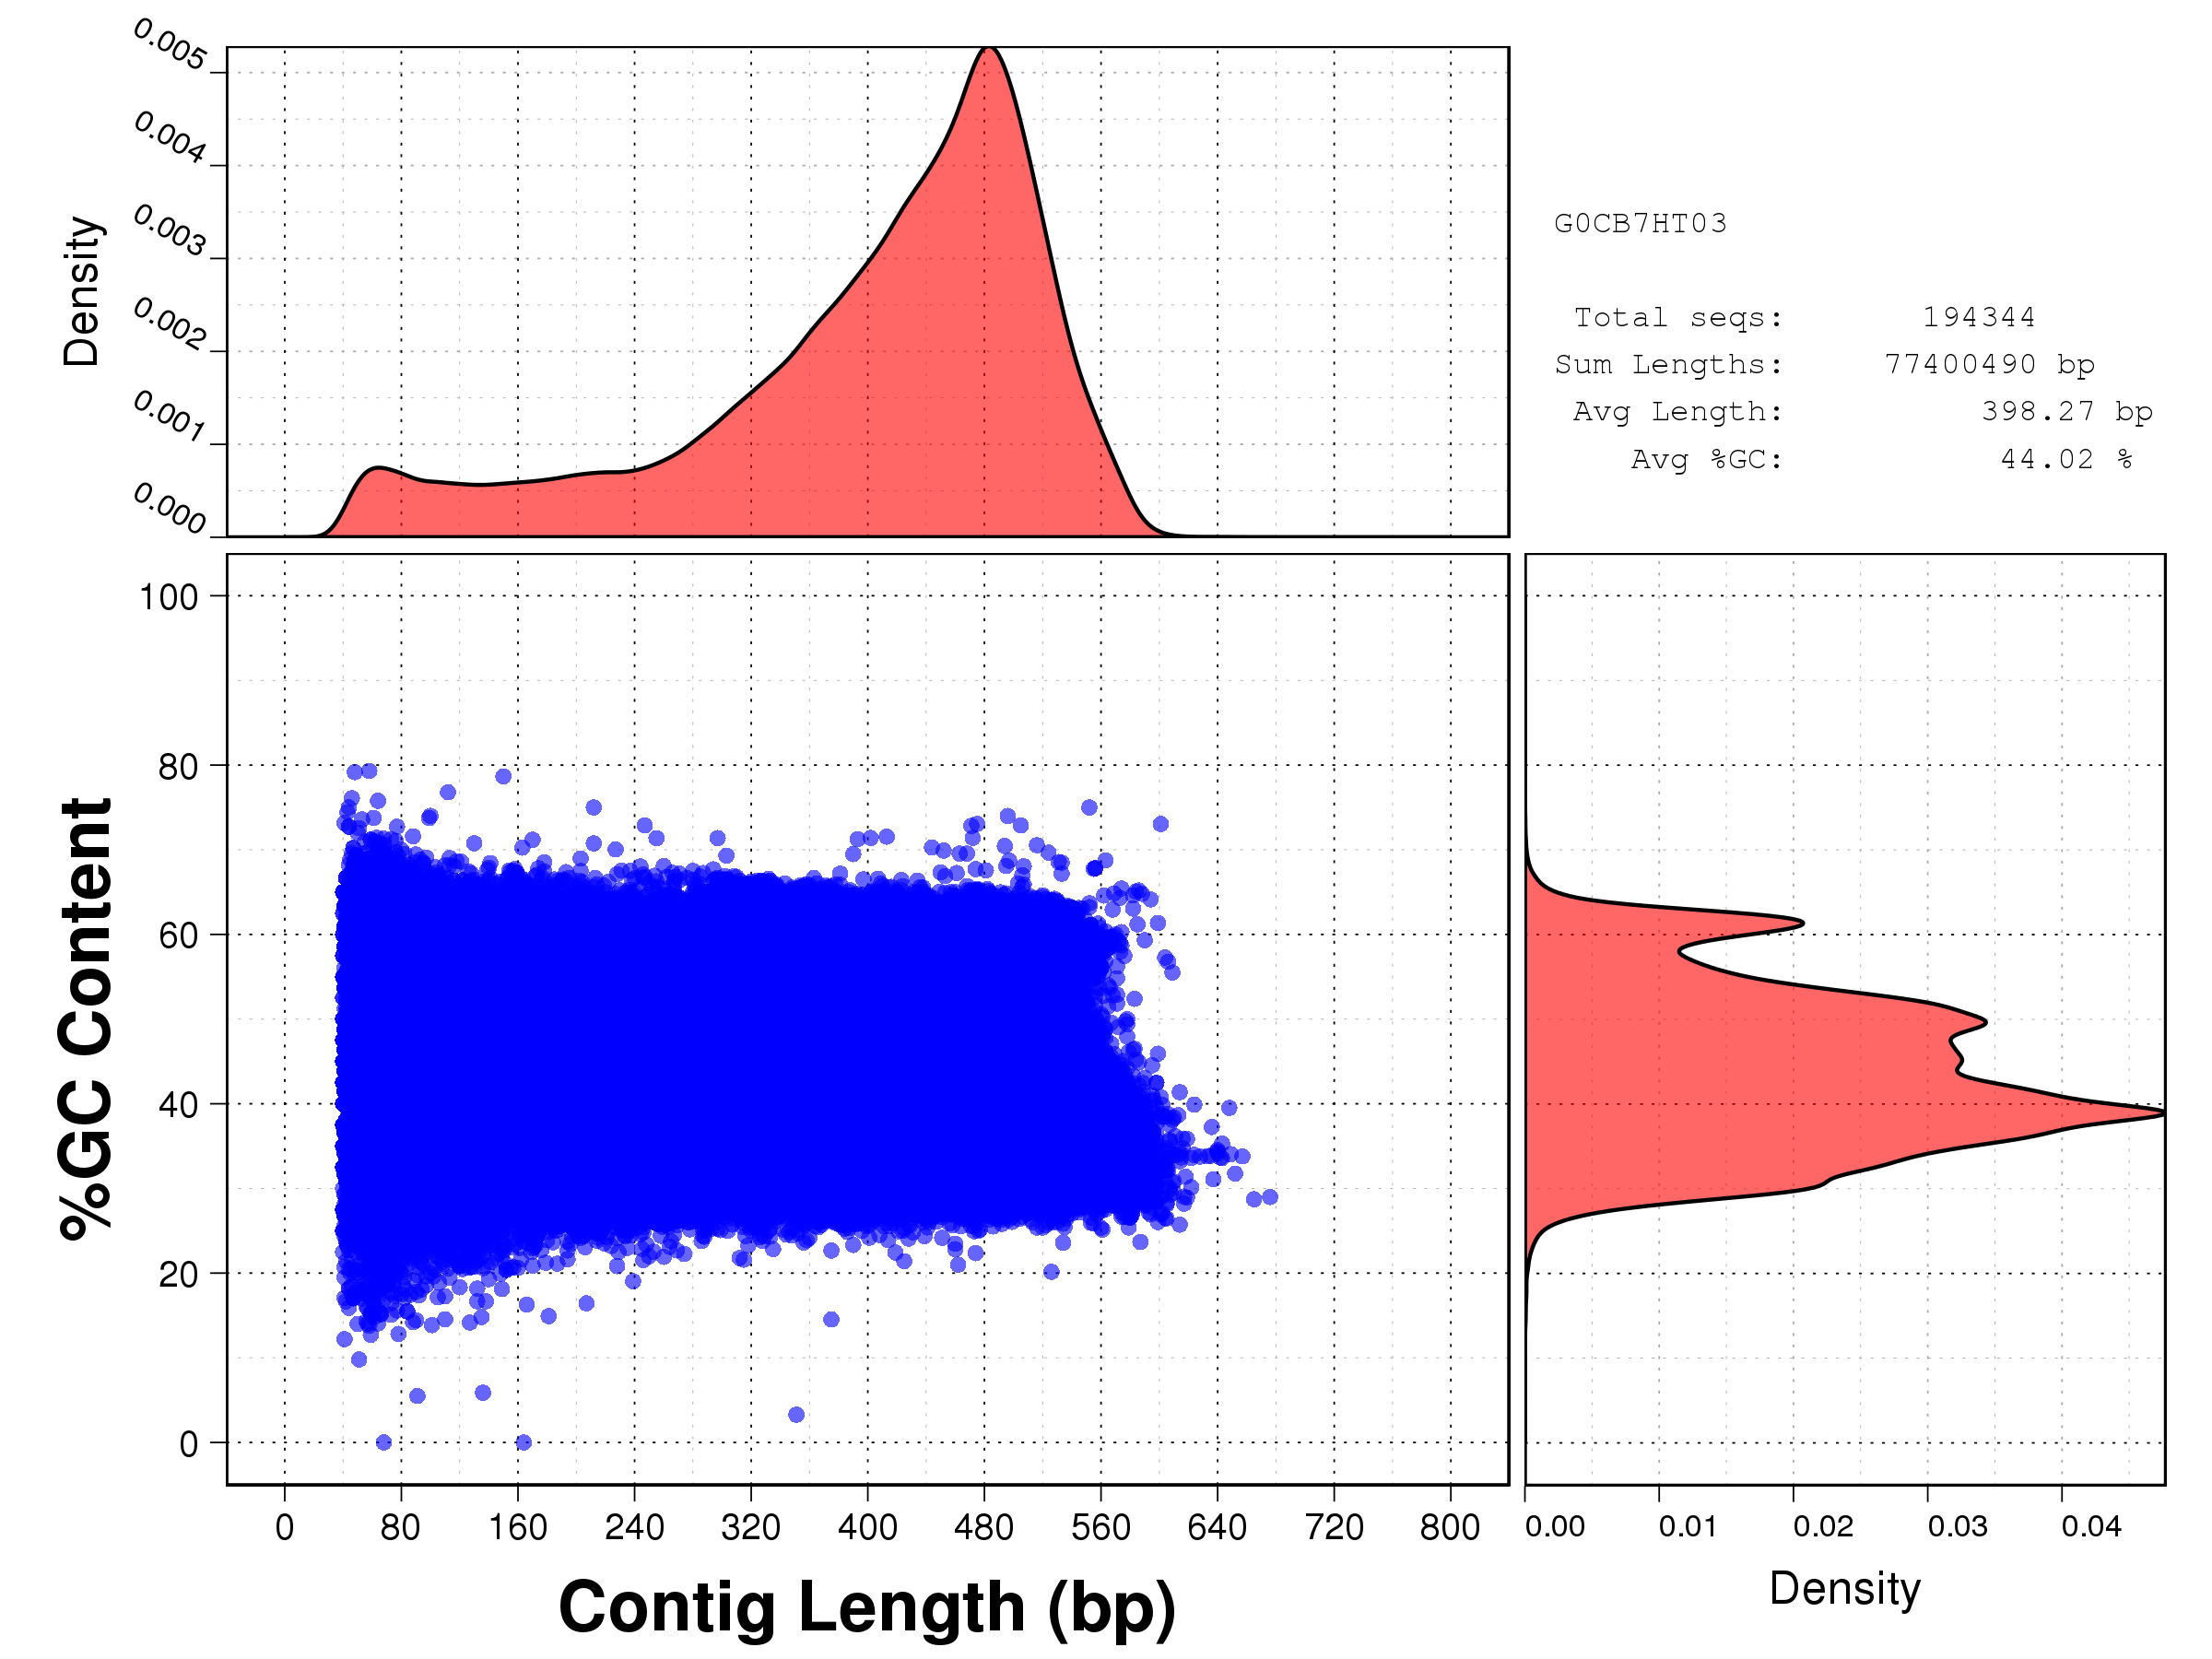 Length vs GC content plot for the starfish raw reads, set G0CB7HT03.